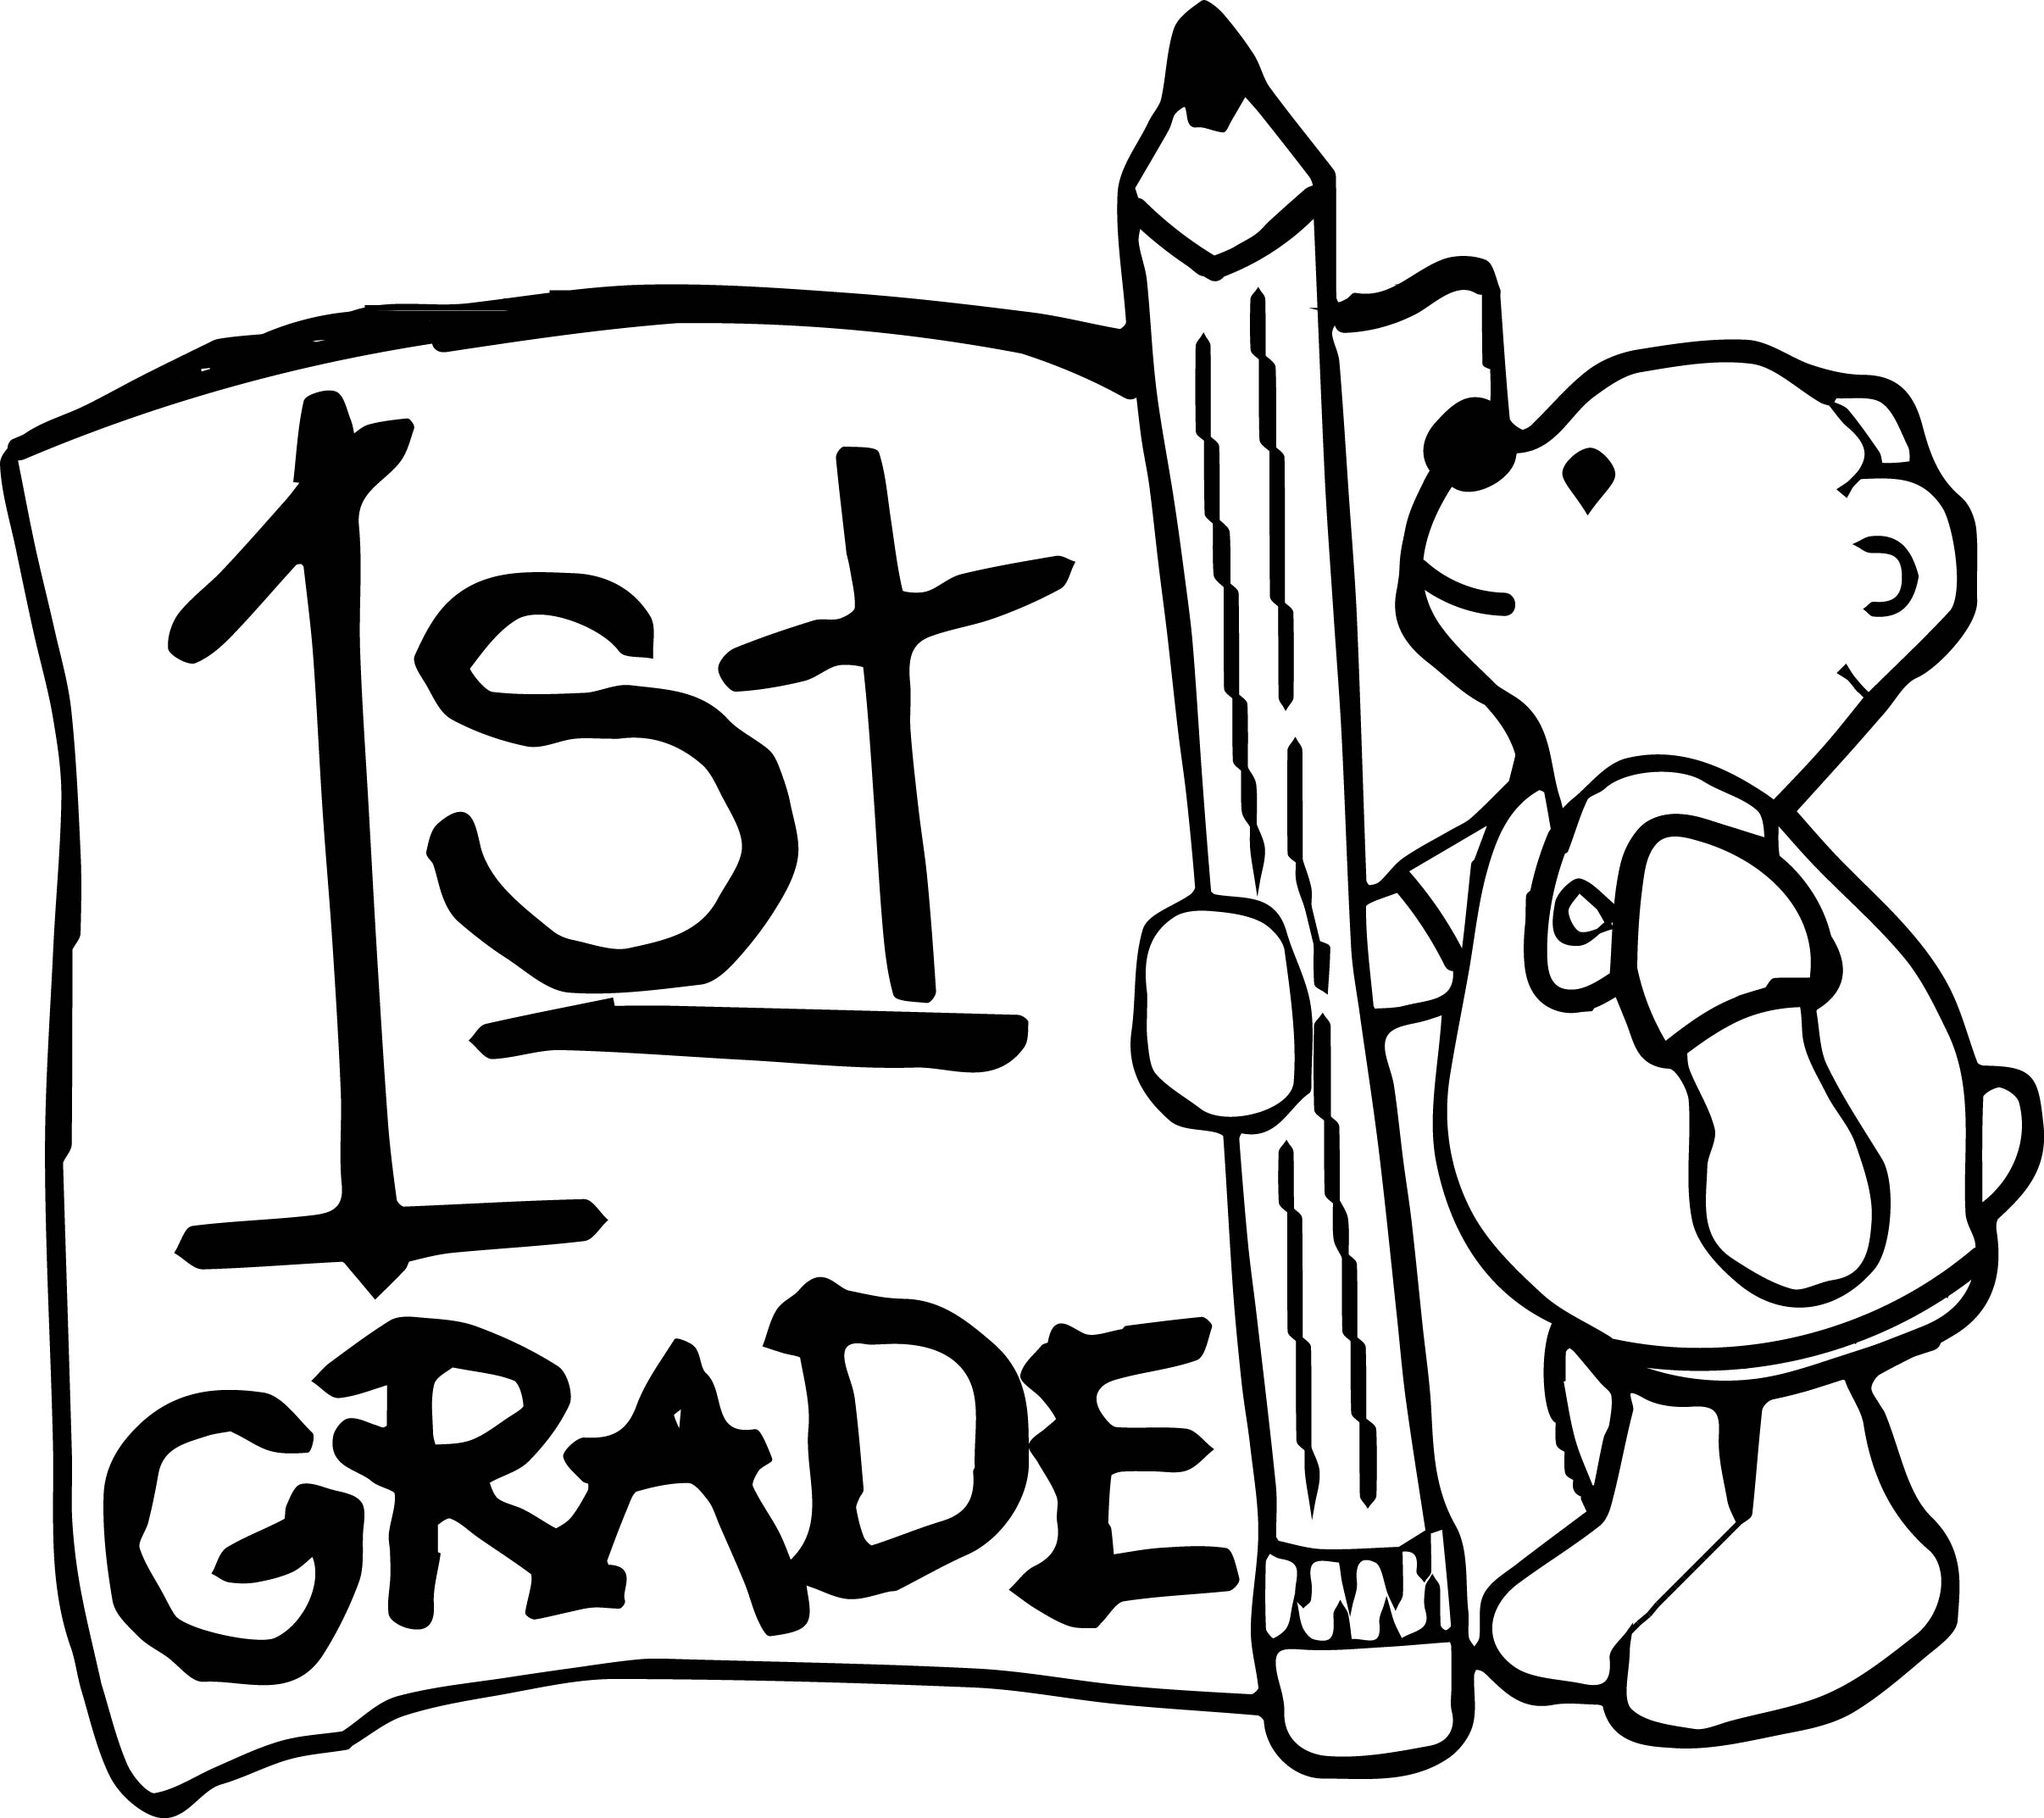 1st grade coloring pages 1st grade coloring pages free download on clipartmag pages coloring 1st grade